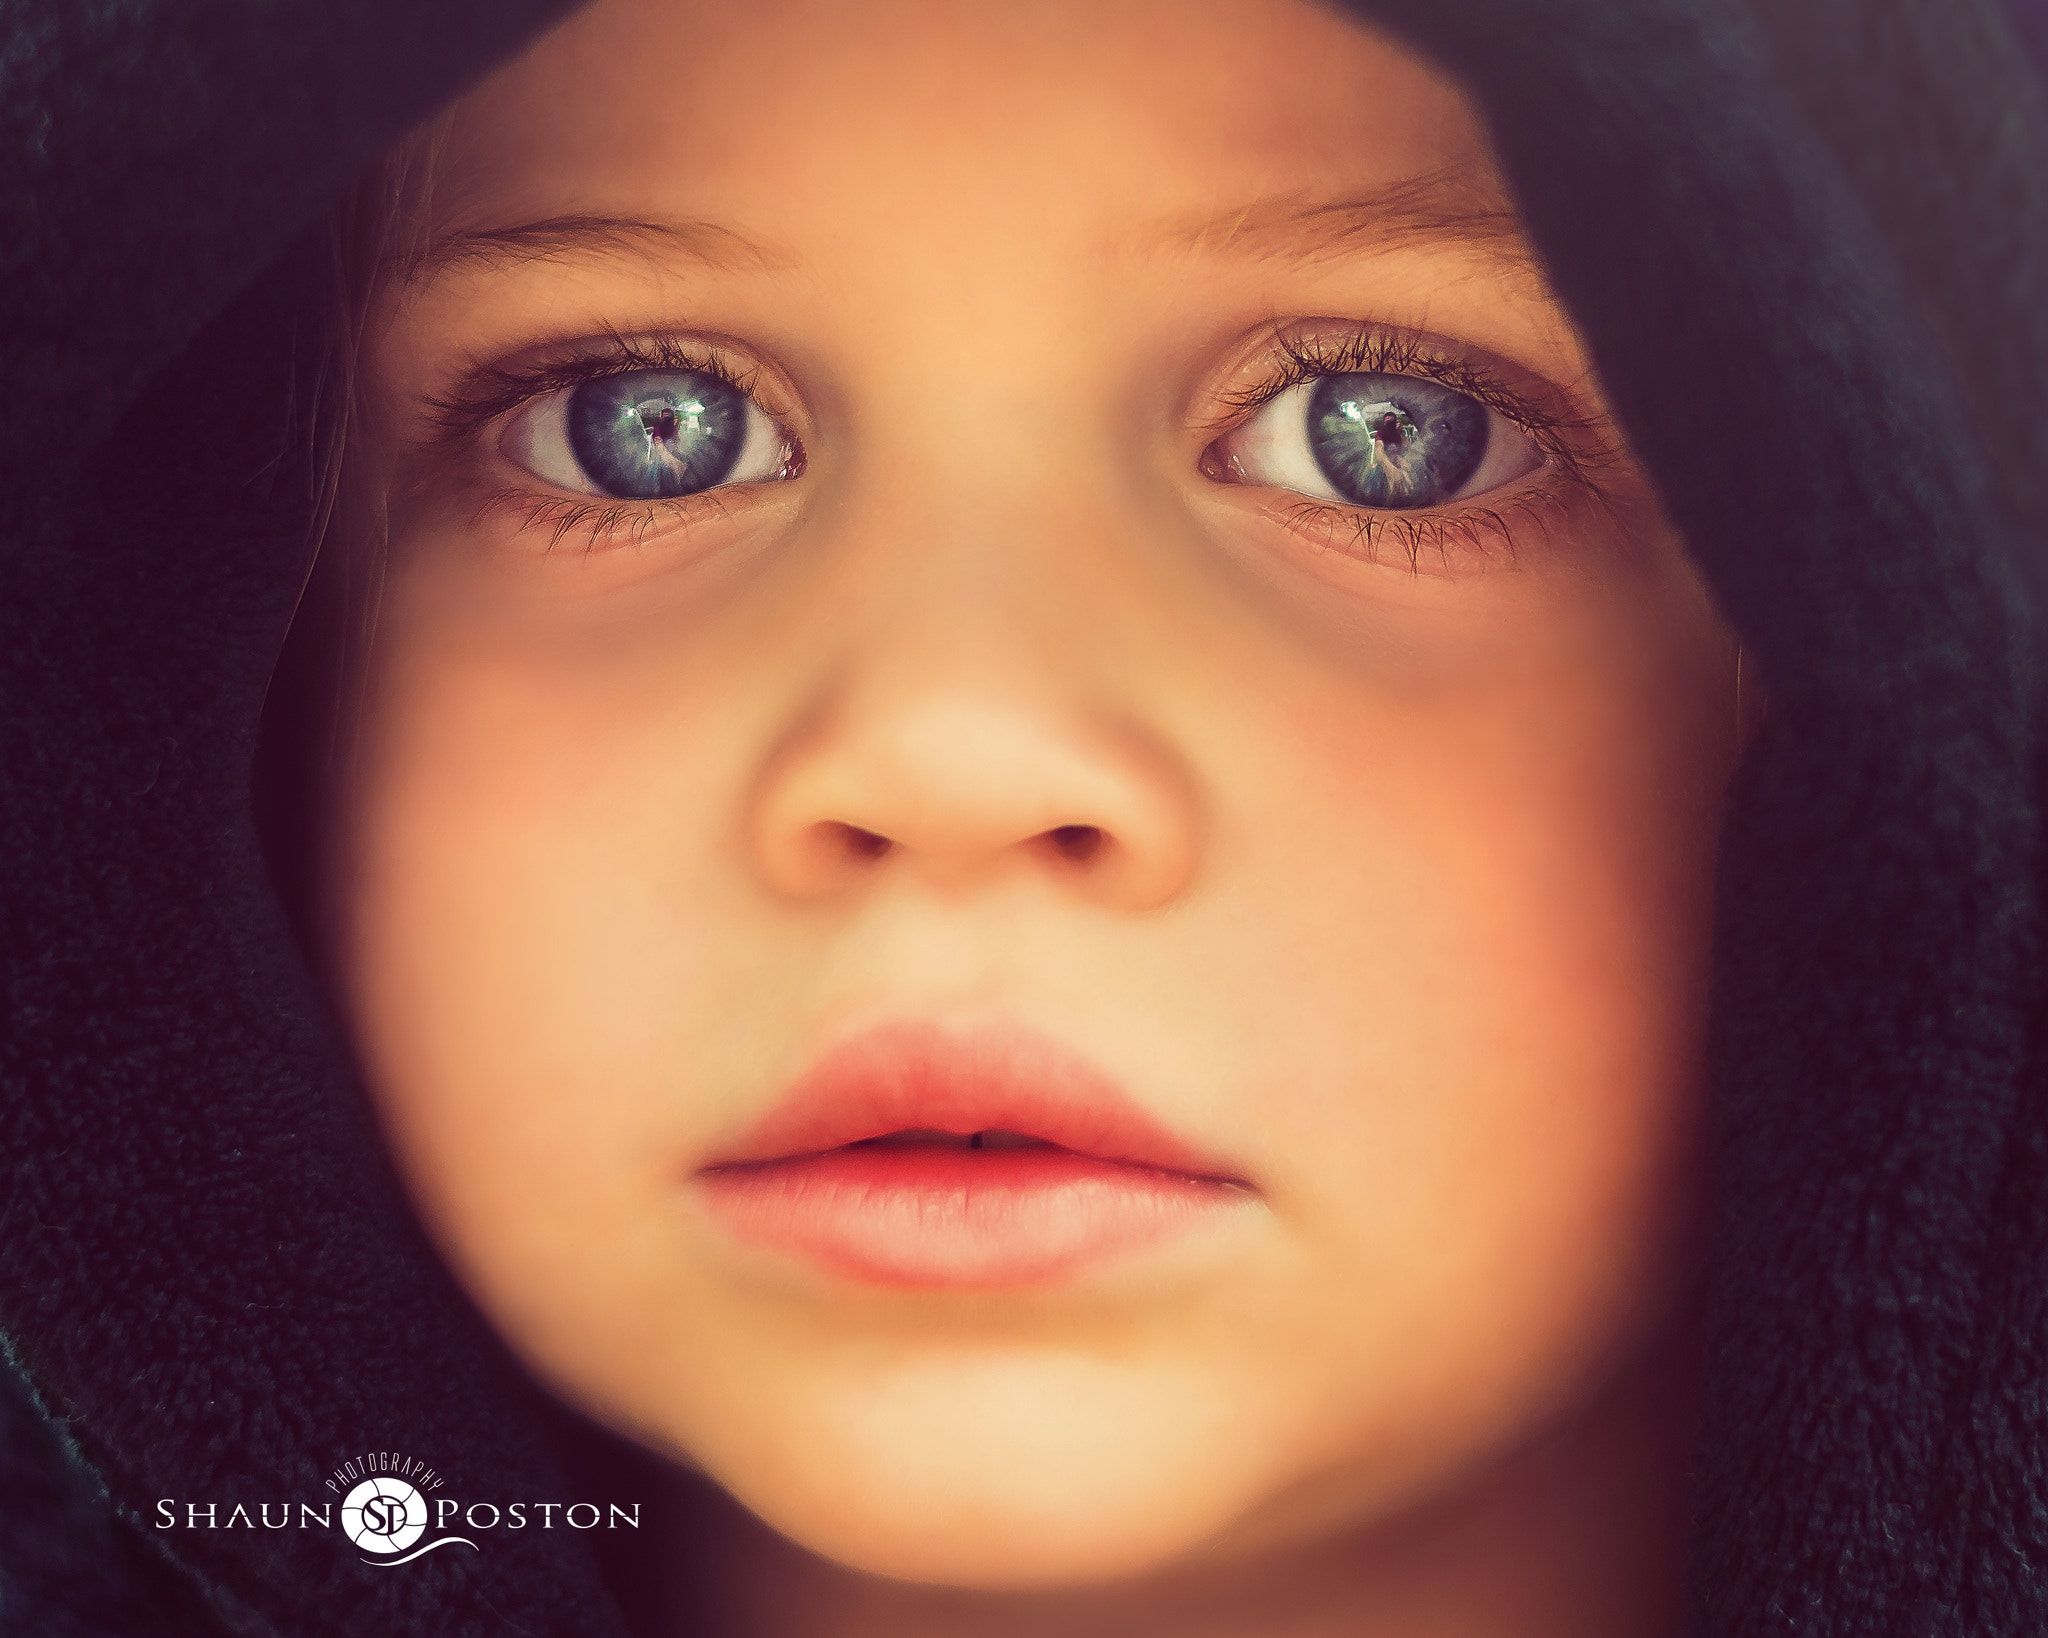 Photograph In Your Eyes by Shaun Poston on 500px